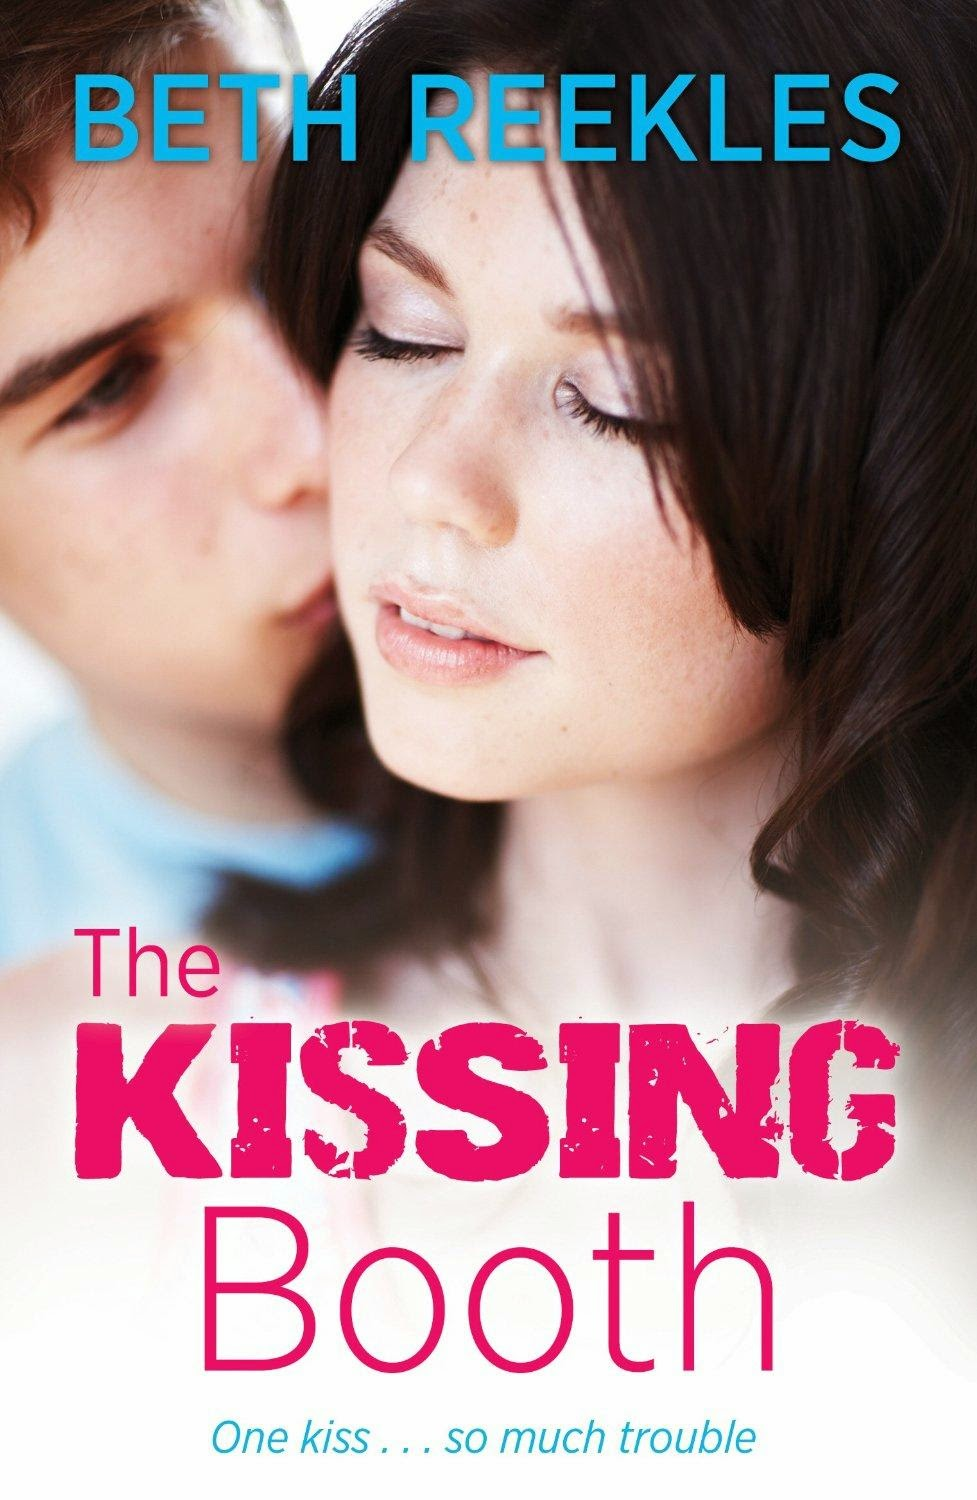 THE KISSING BOOTH BETH REEKLES PDF FREE DOWNLOAD